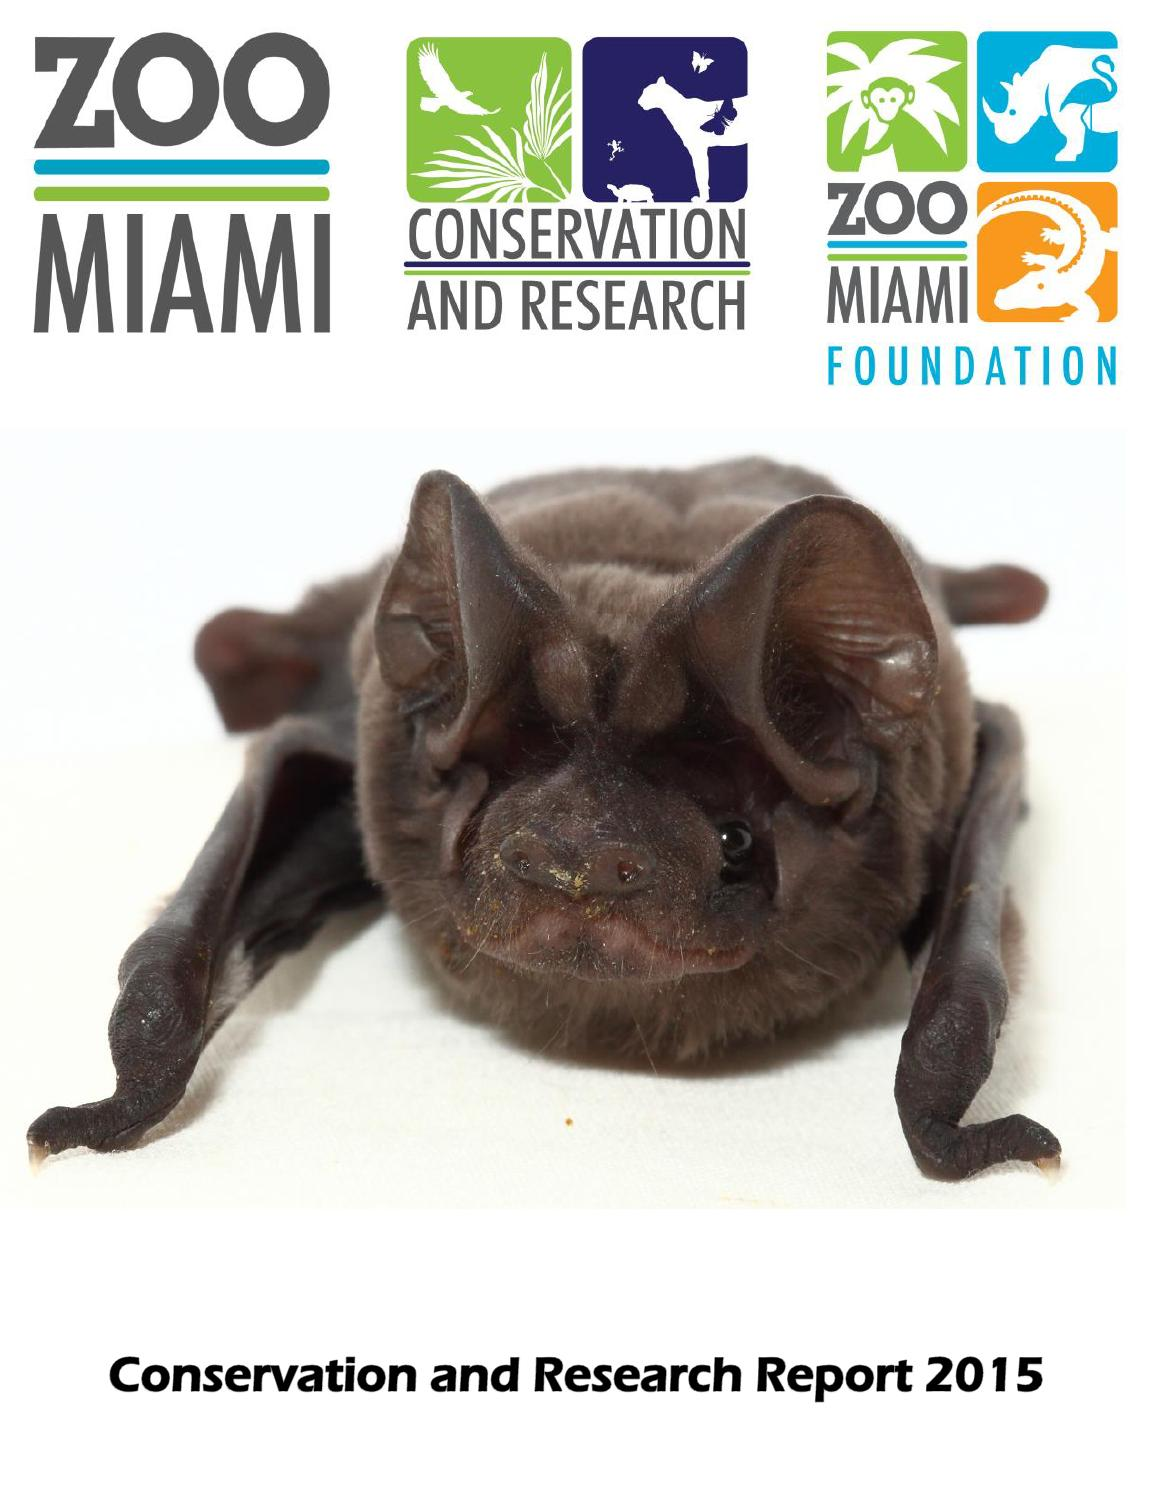 2015 Zoo Miami Conservation and Research Annual Report